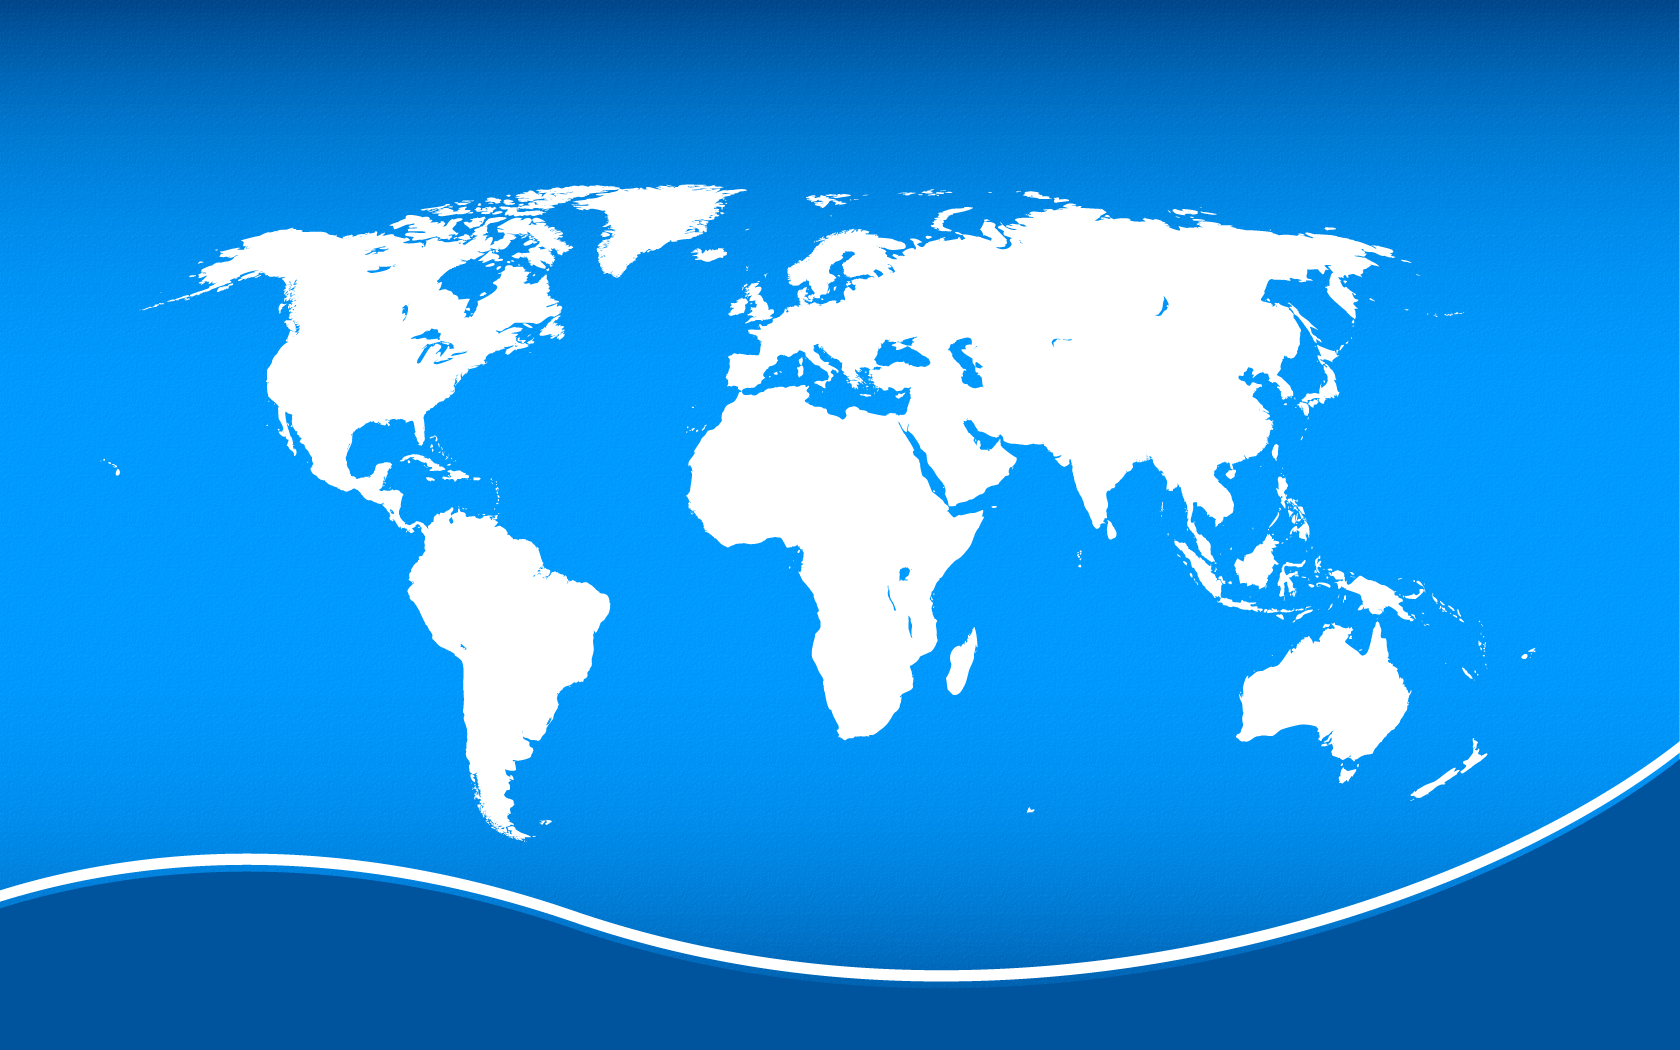 world-map-vector-background-1410